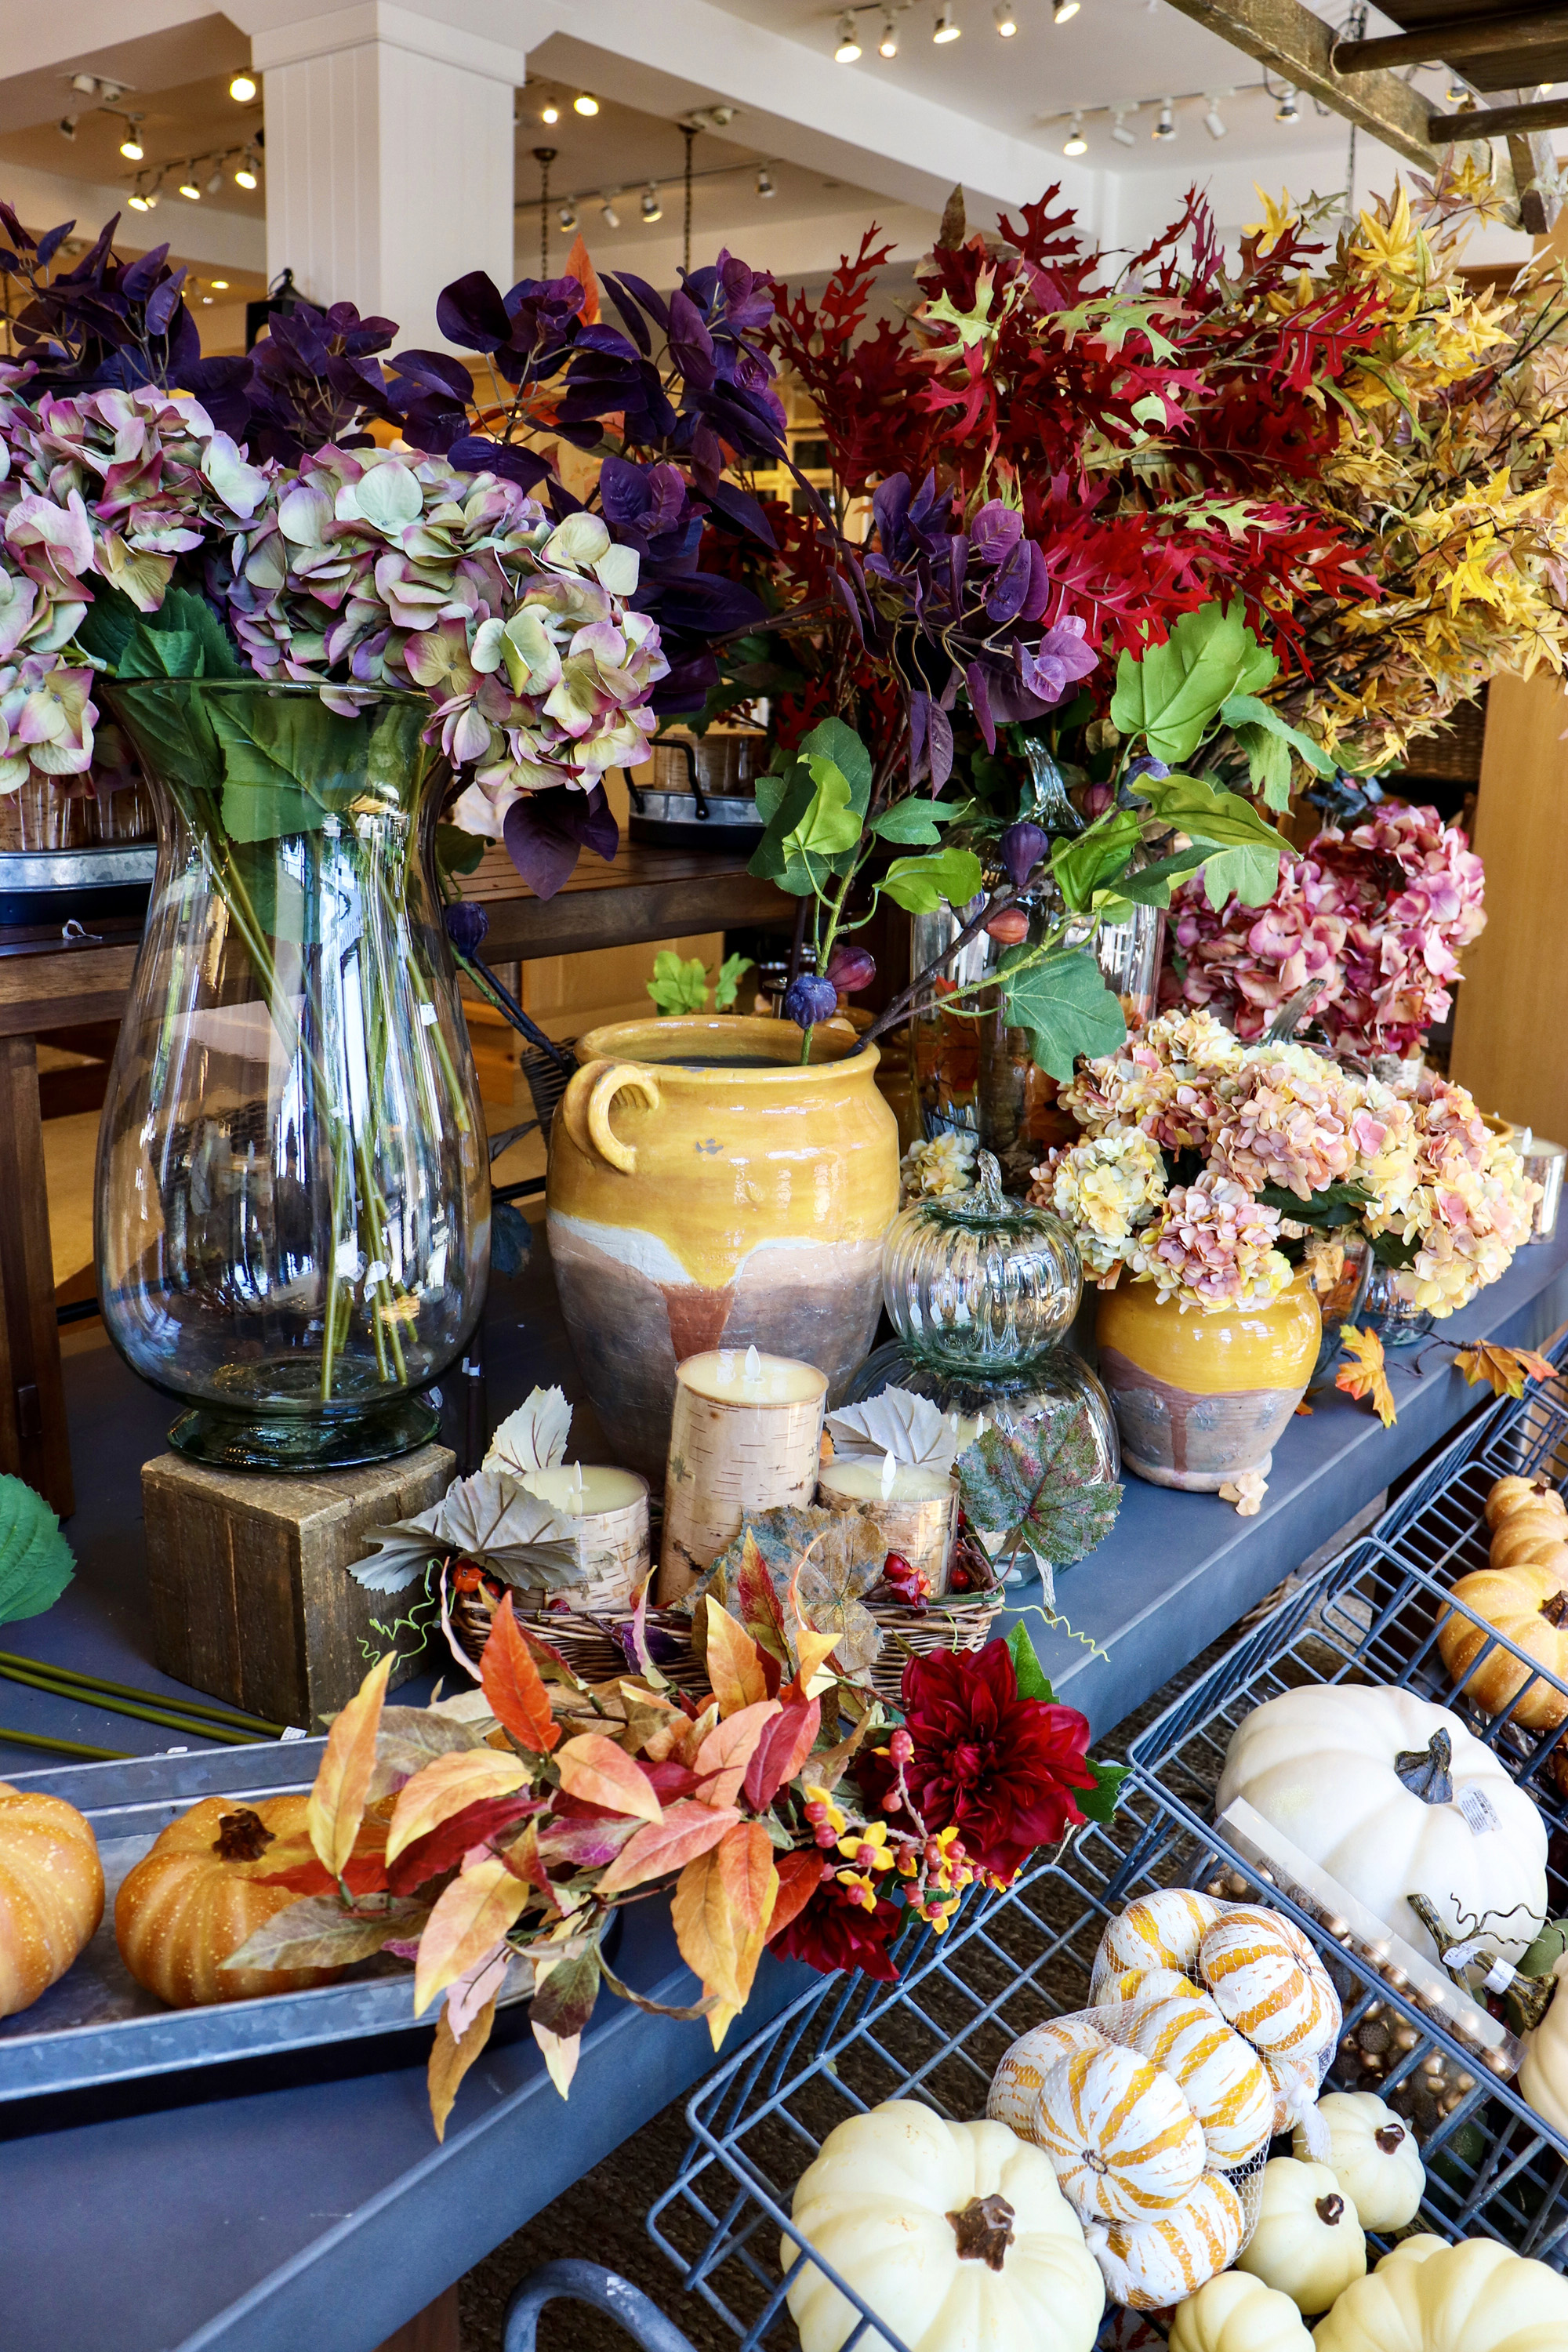 Hunting for Fall and Autumn Decor